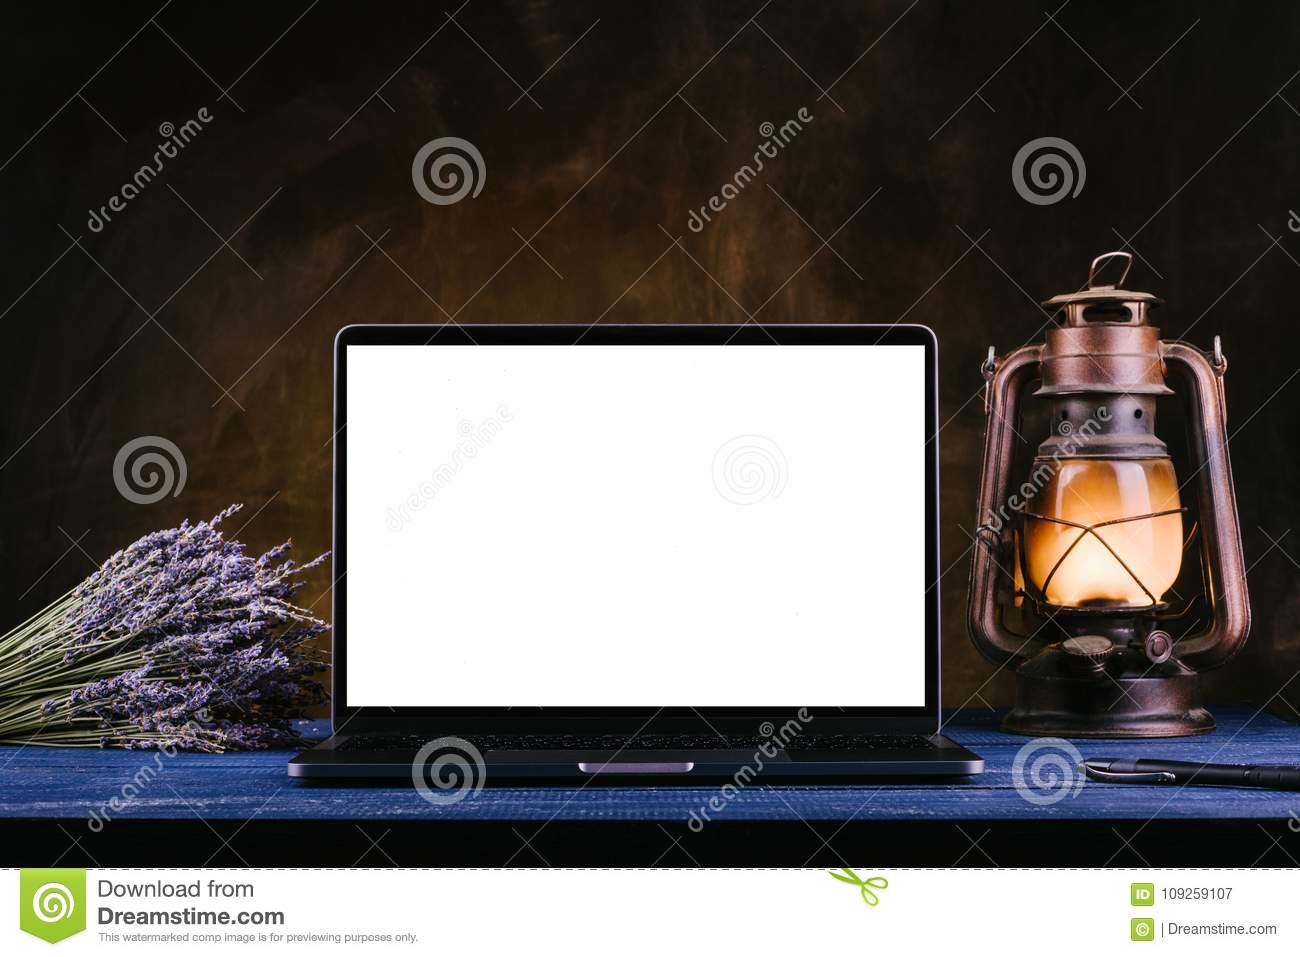 A laptop with a blank screen stands on a blue wooden table